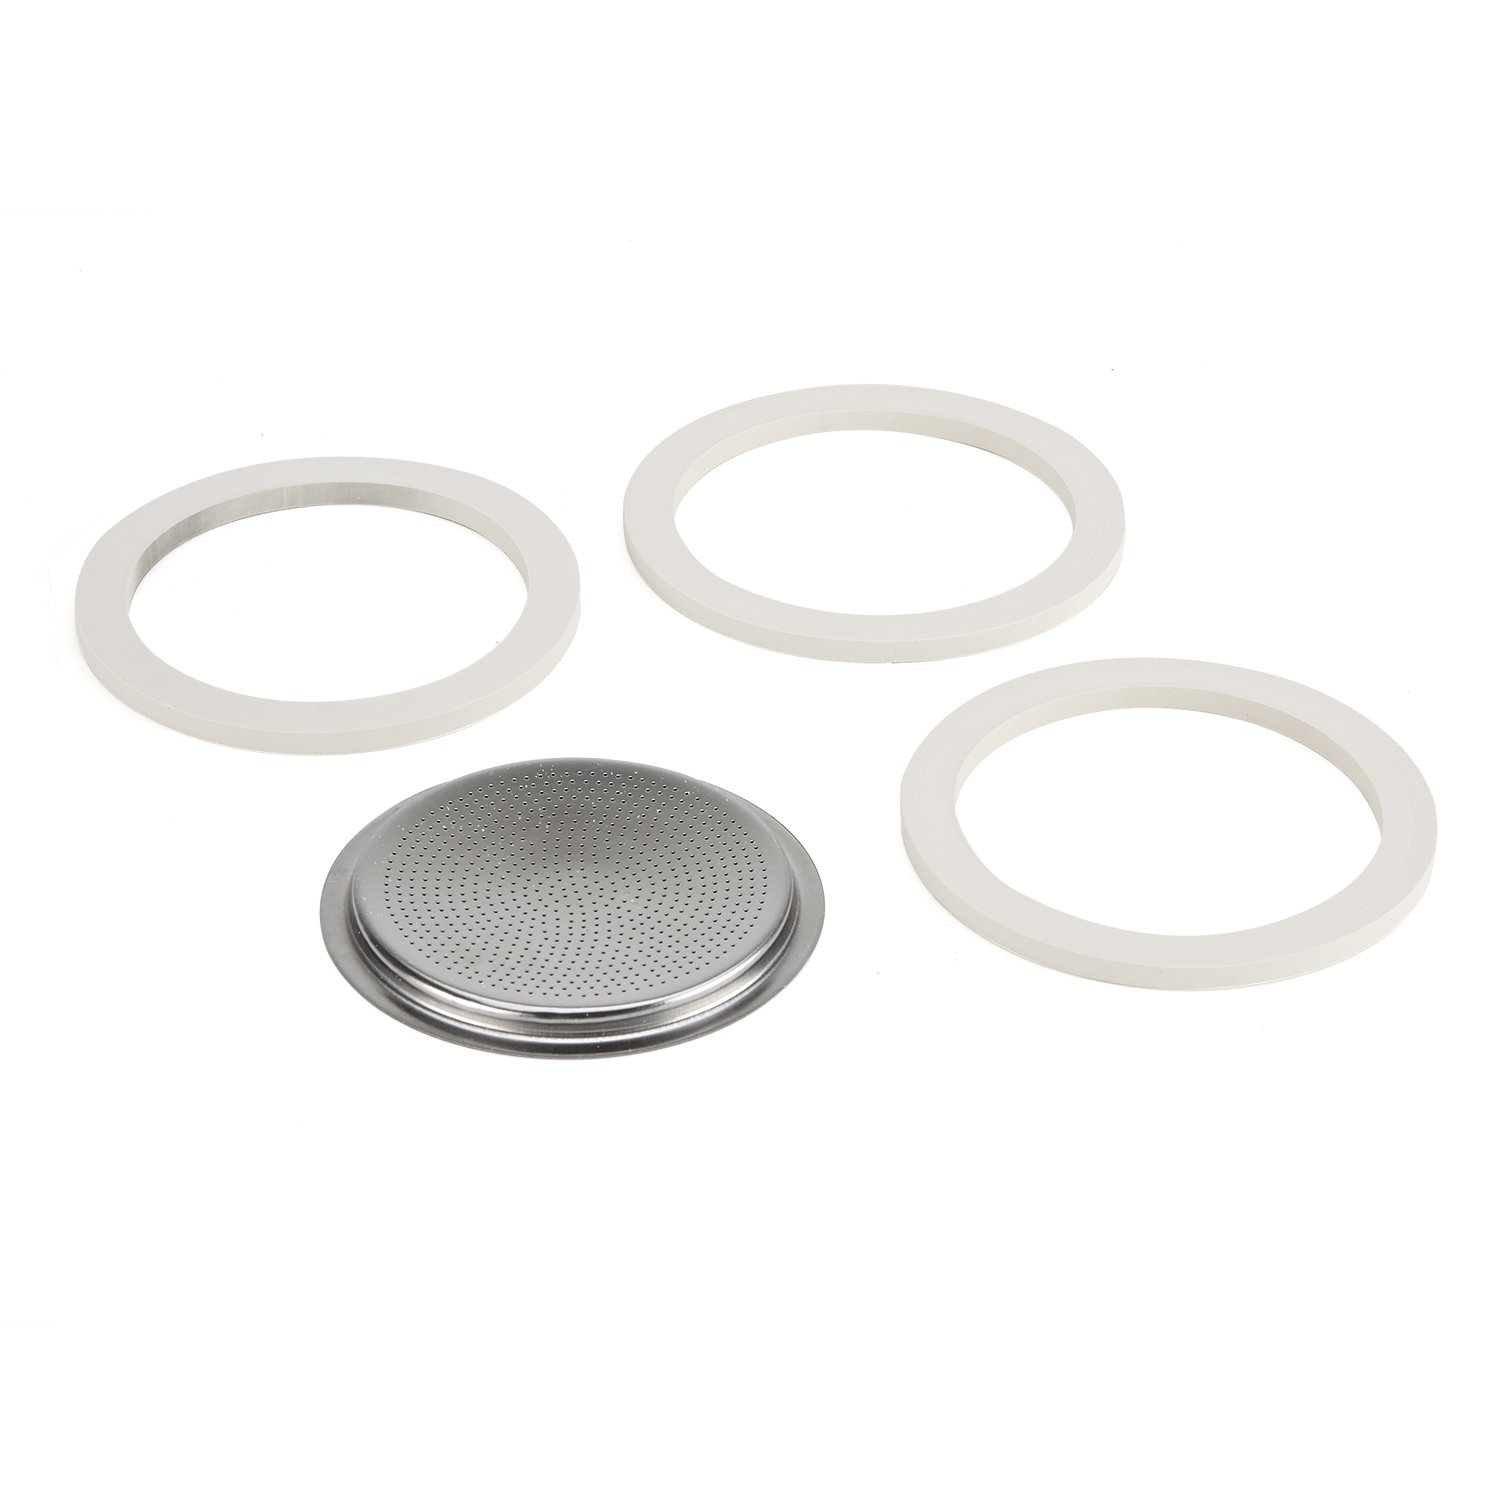 Bialetti 06617 Stainless Steel 10-Cup Gasket/Filter Plate Replacement Parts